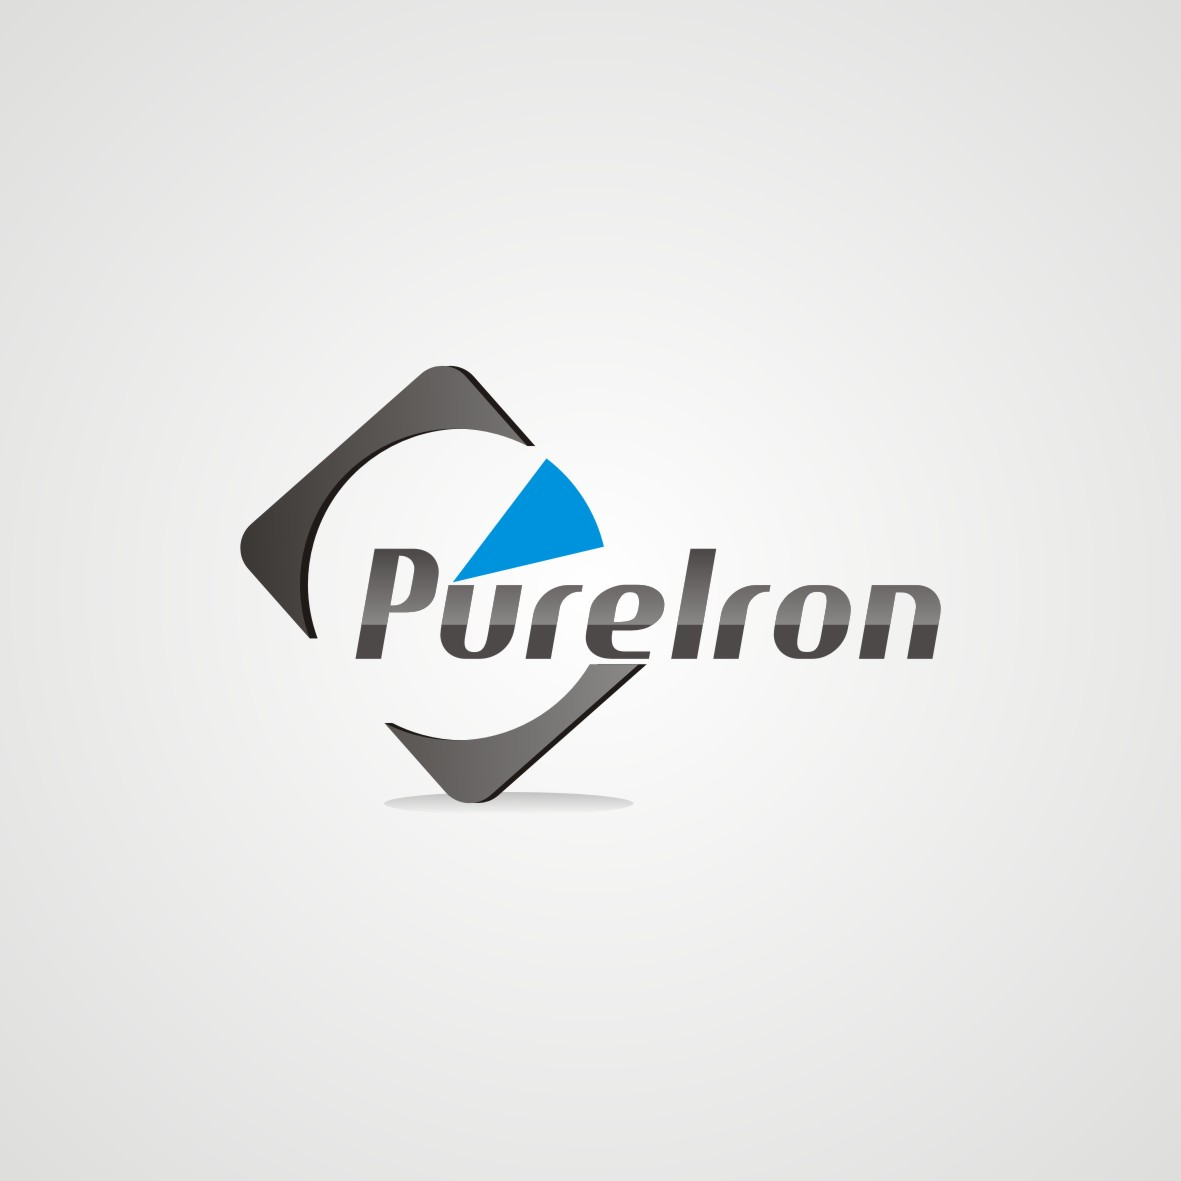 Logo Design by arteo_design - Entry No. 150 in the Logo Design Contest Fun Logo Design for Pure Iron.